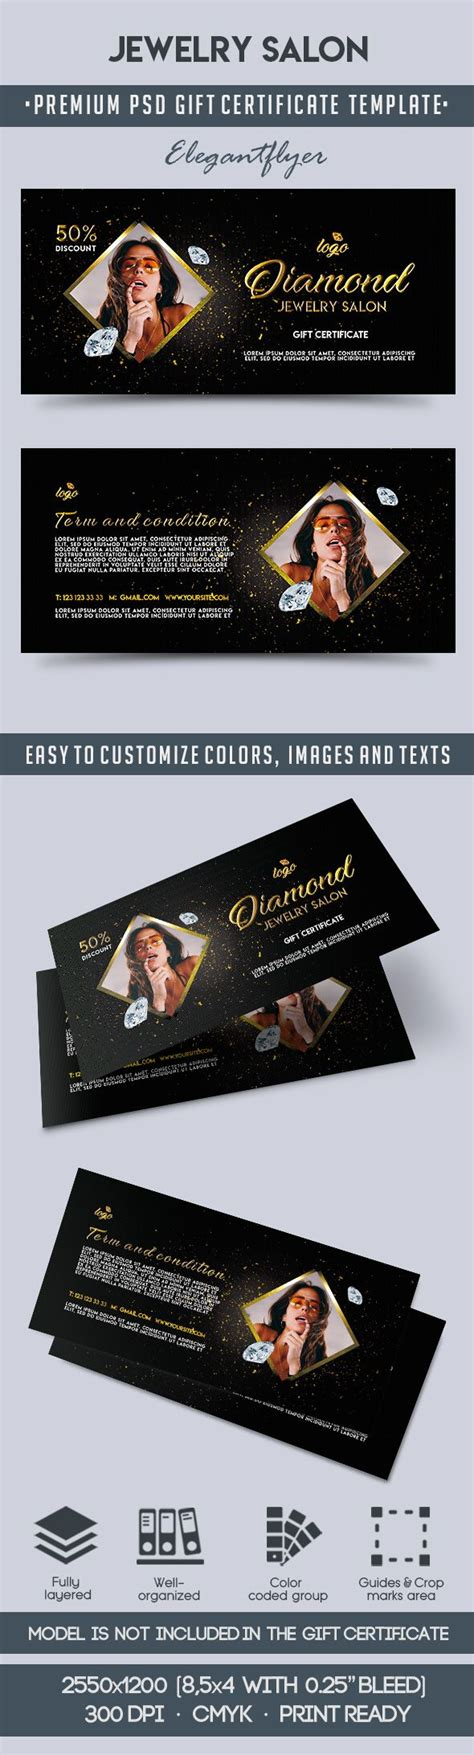 jewelry business card psd template jewelry salon voucher in psd by elegantflyer